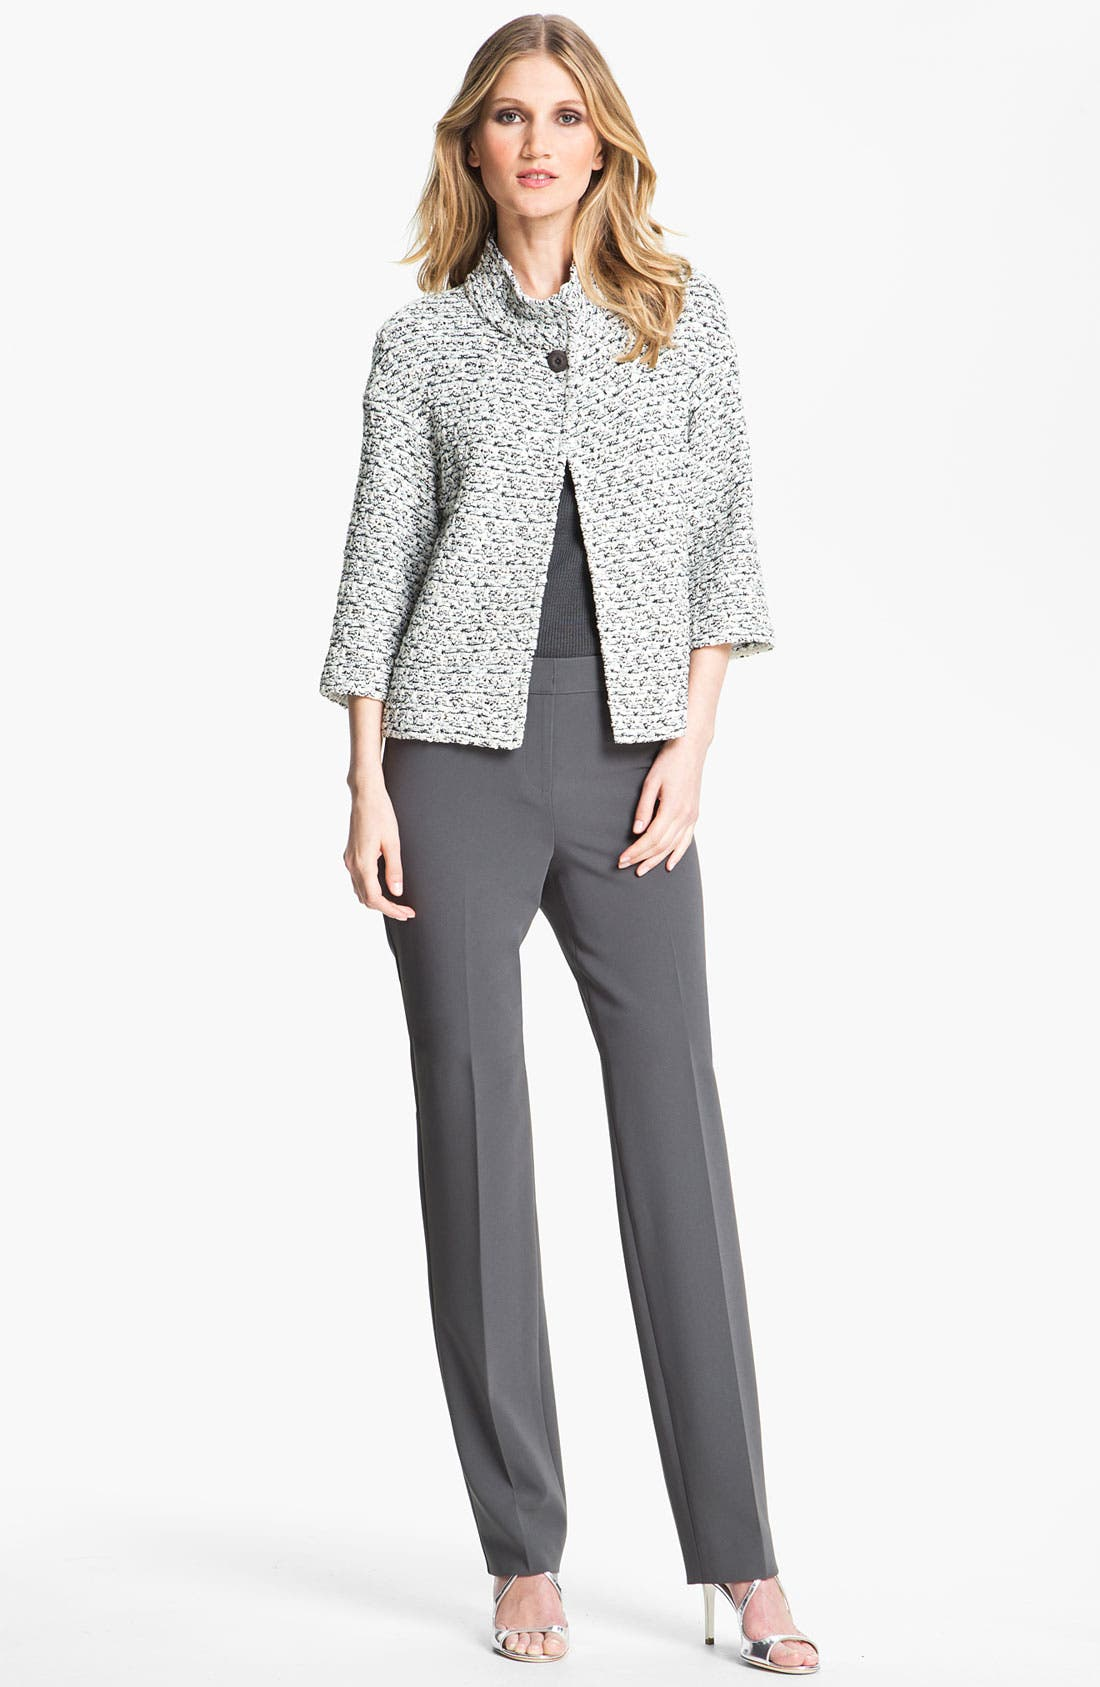 Main Image - St. John Collection Organza Tape Tweed Knit Jacket